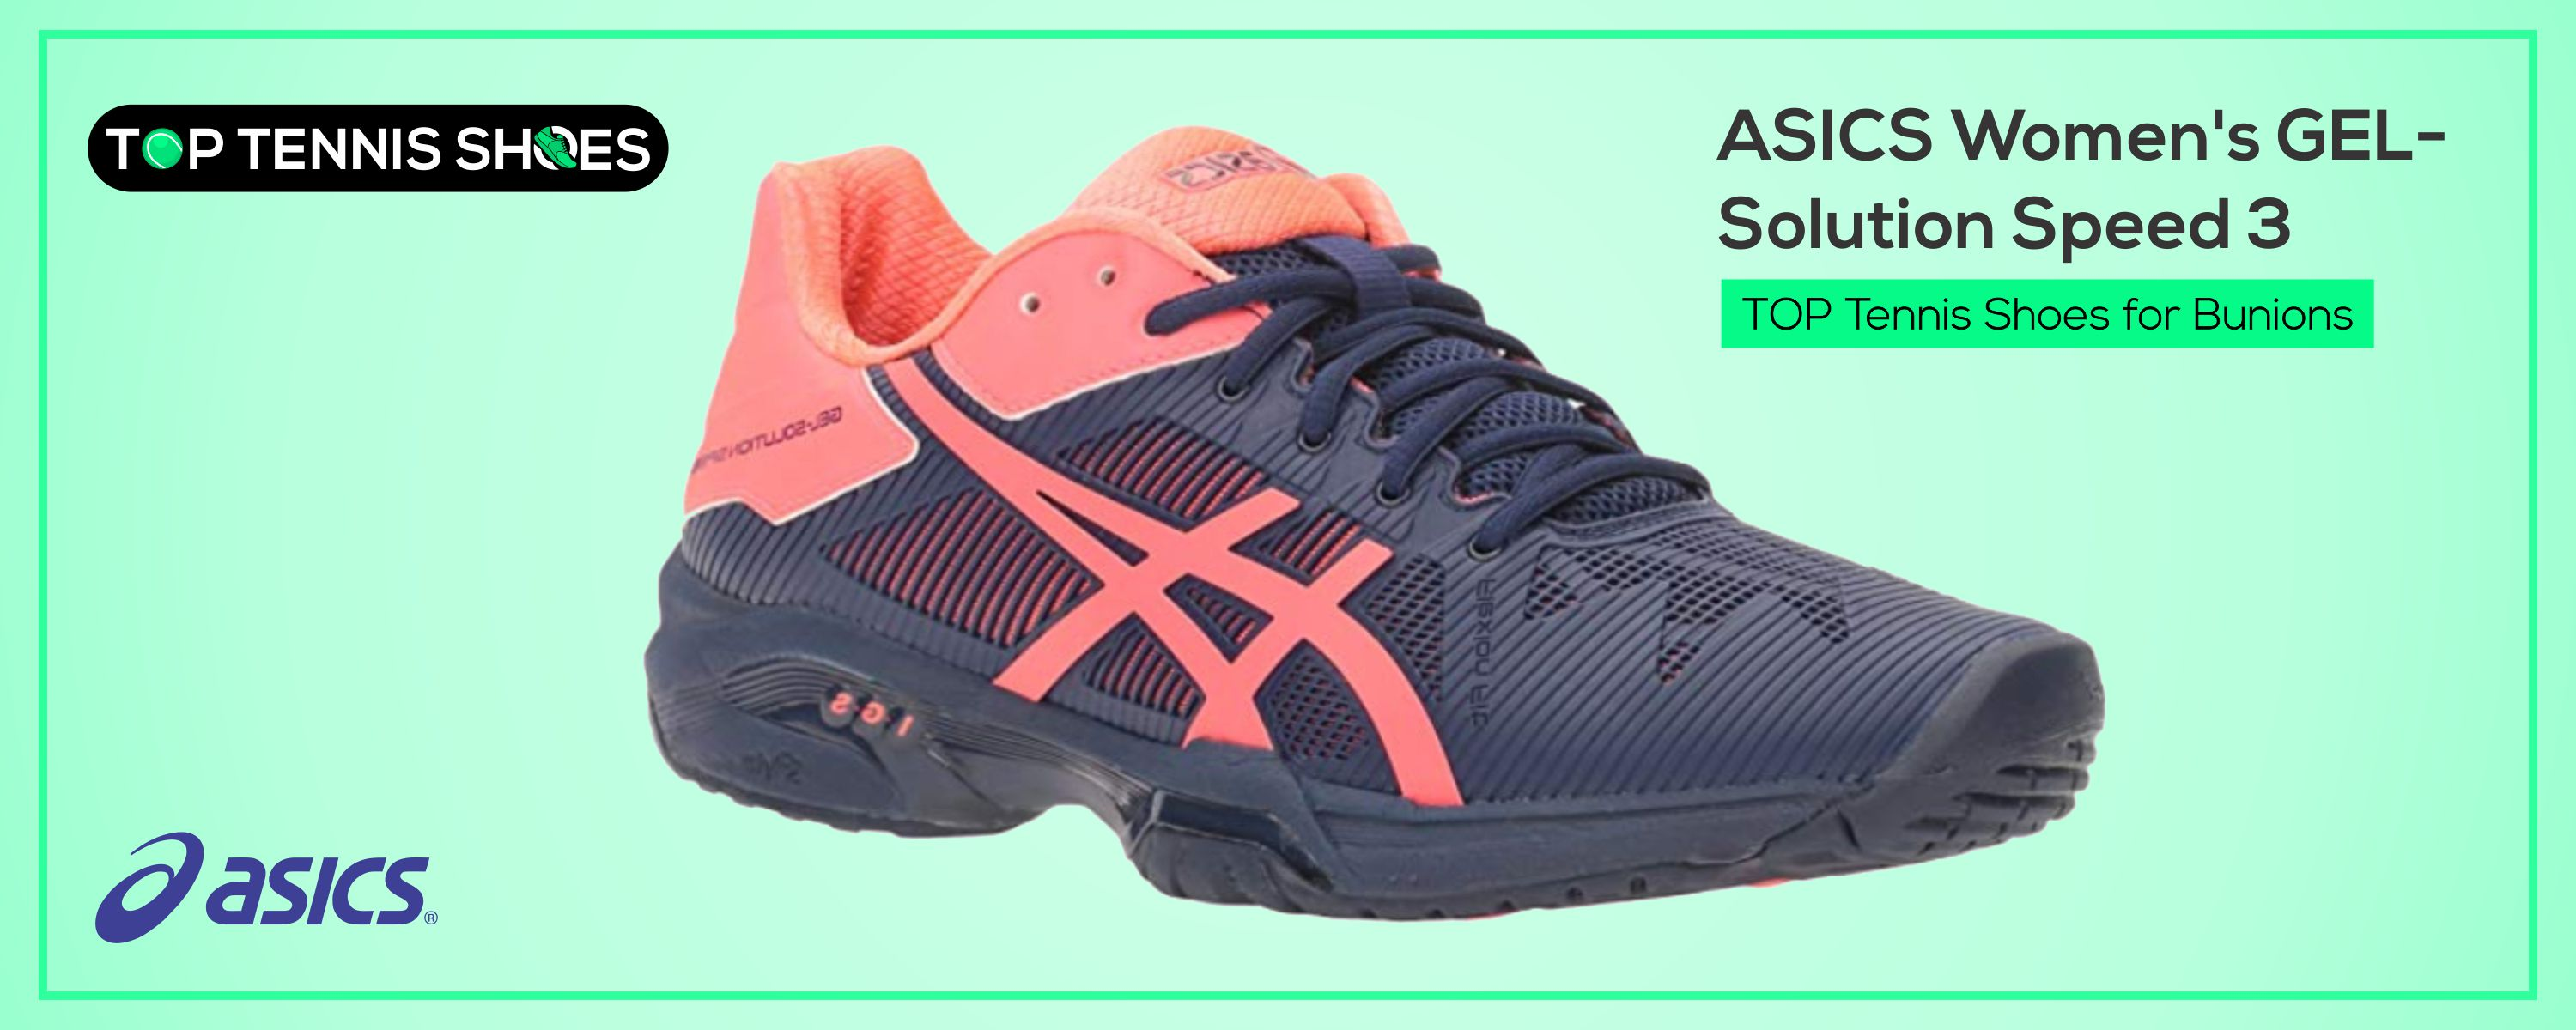 TOP Tennis Shoes for Bunions